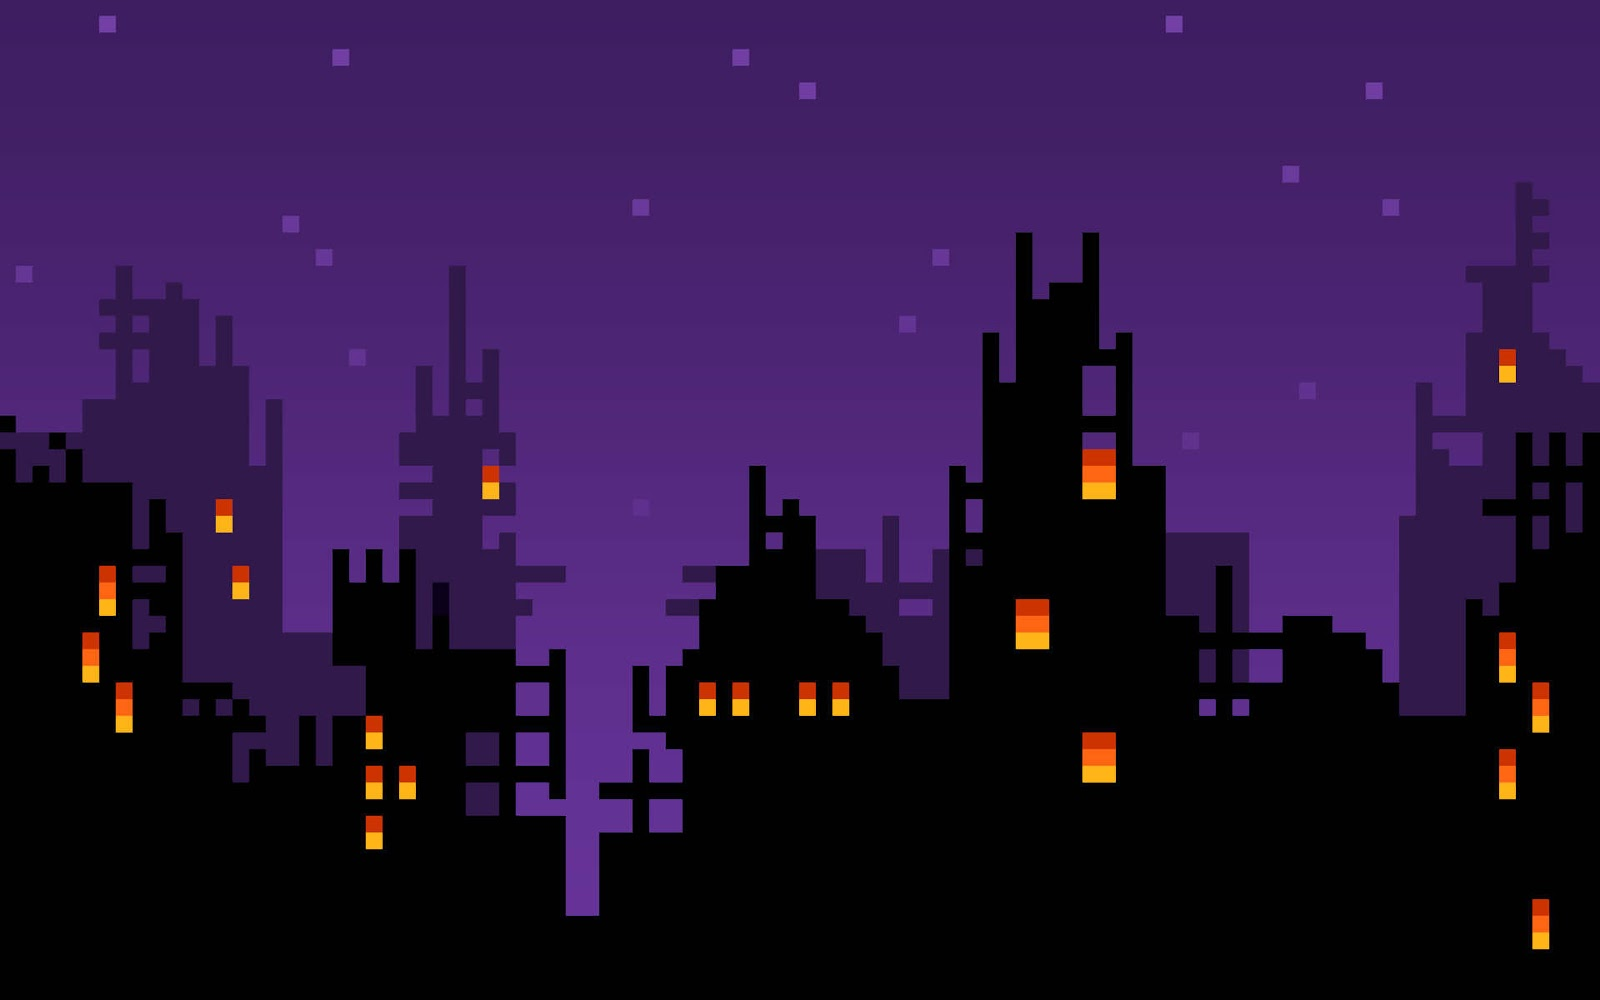 8 bit city landscape wallpaper